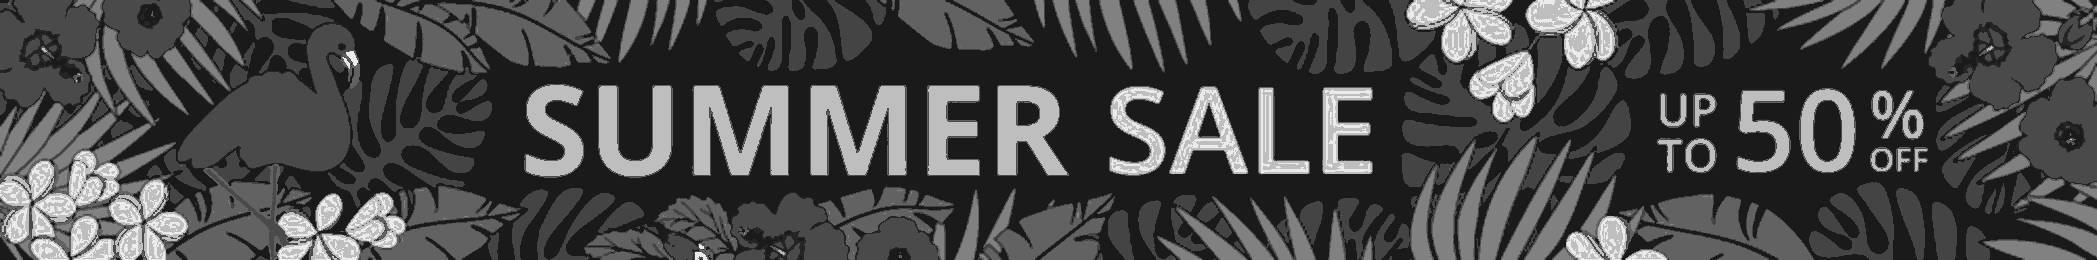 summer sale collection black and white